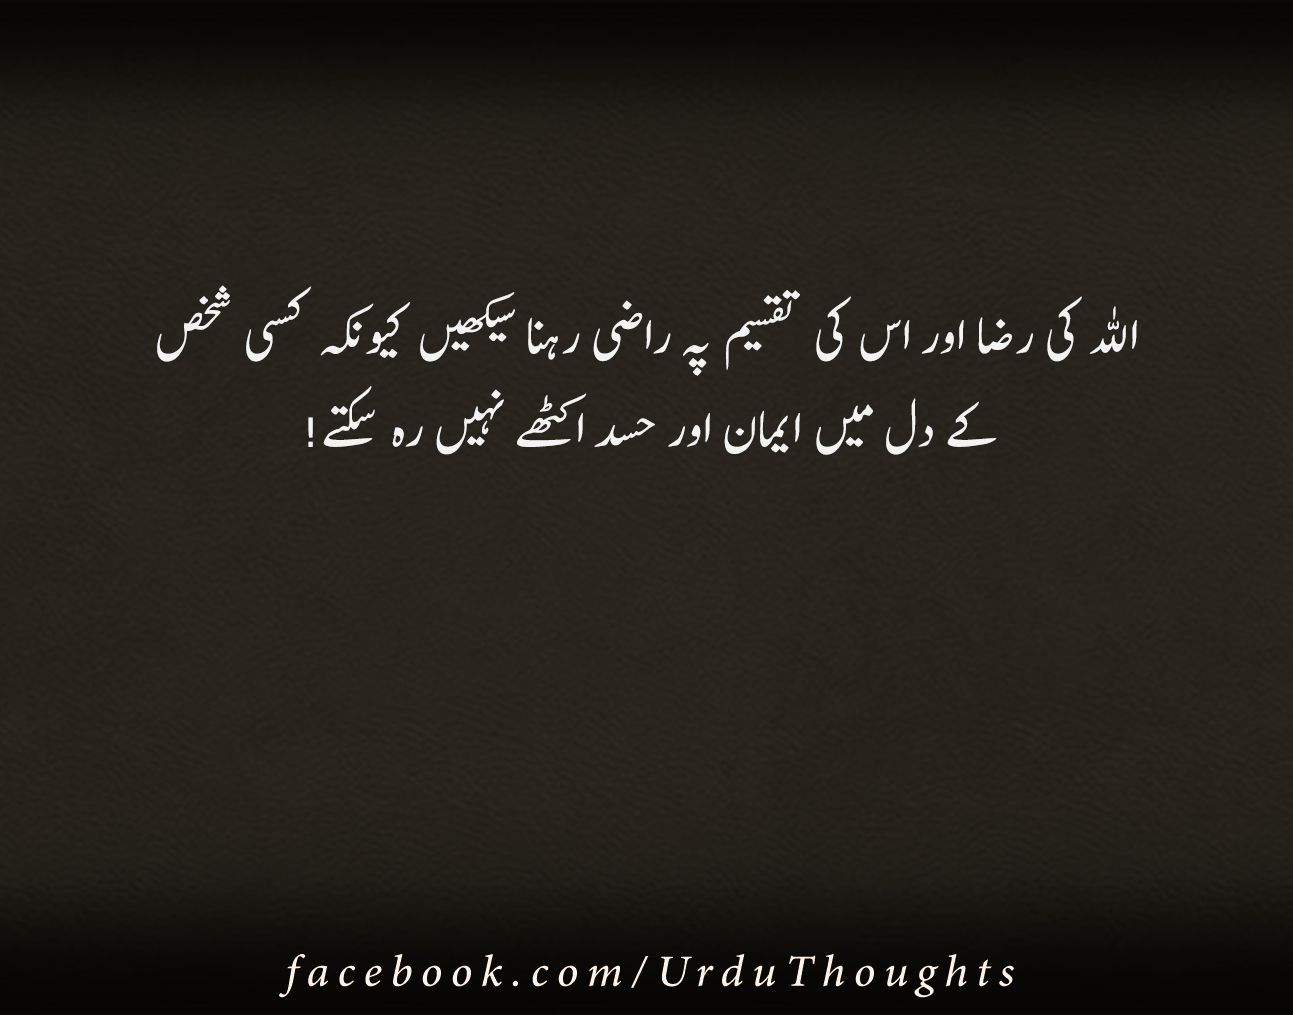 Urdu Thoughts - Black Background Quotes Images  Urdu thoughts